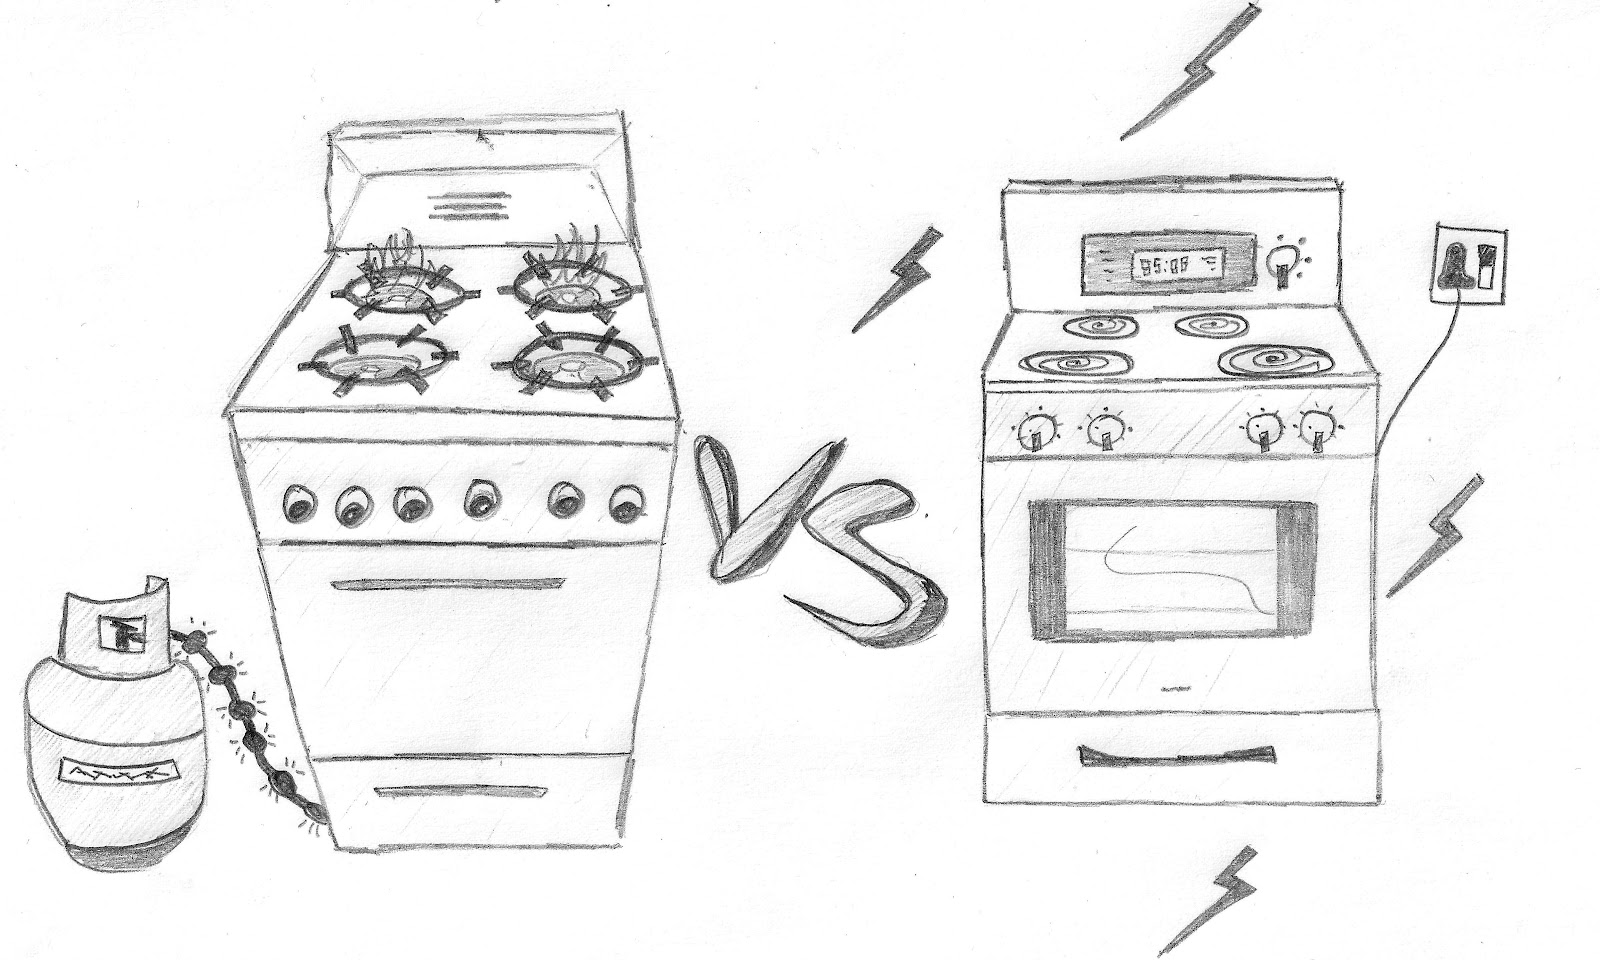 Basic To Advanced Cooking Equipment